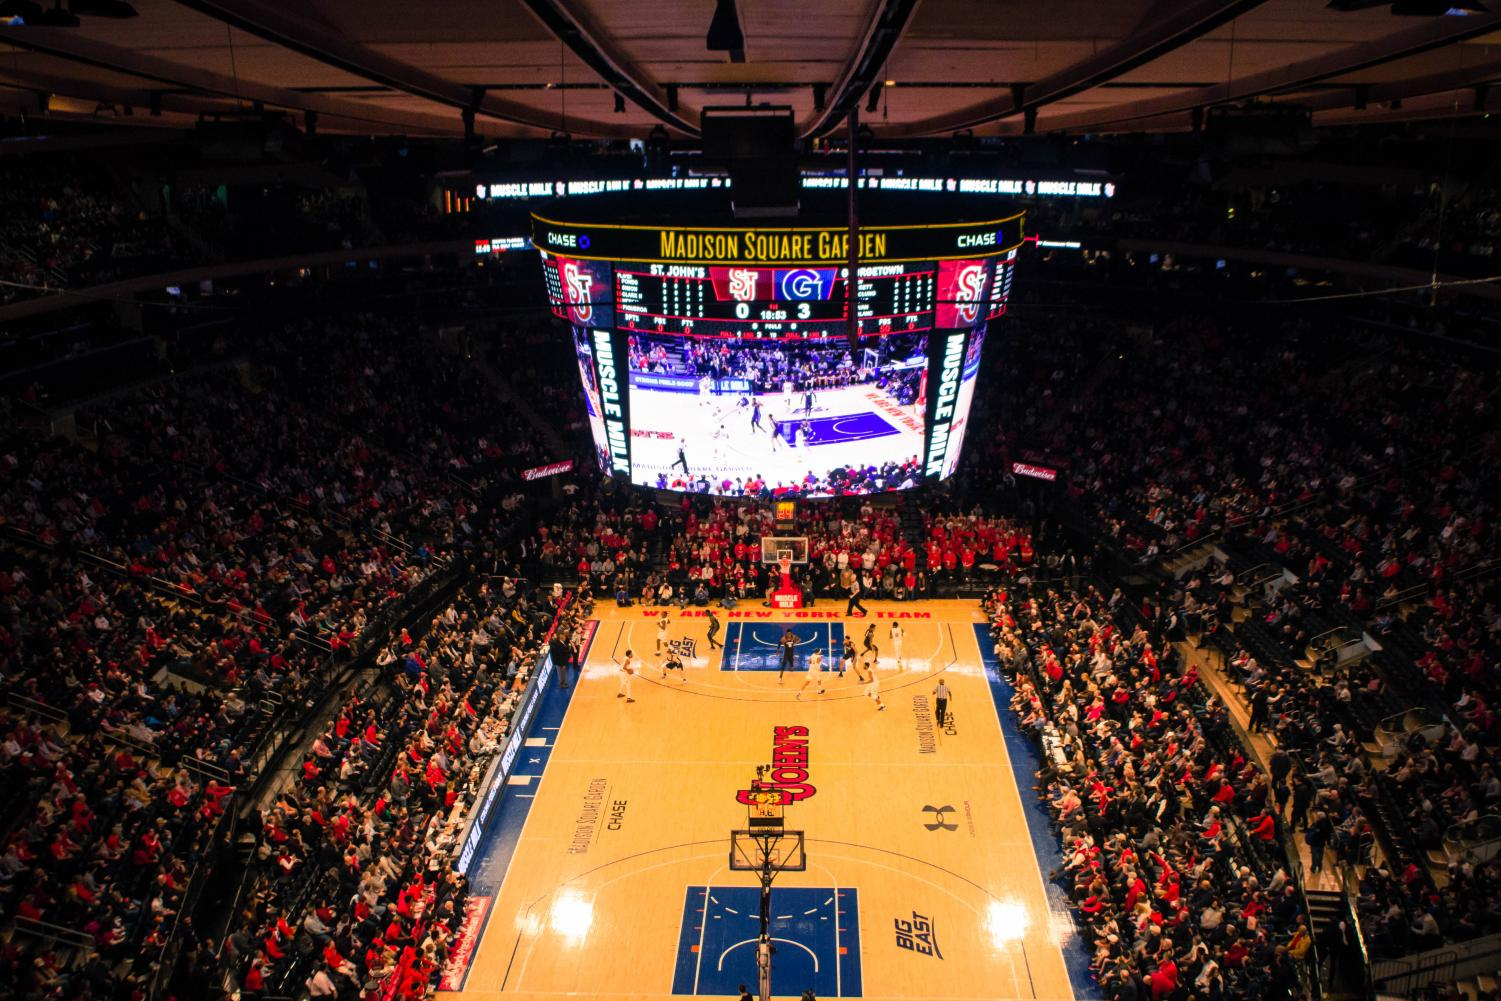 St. John's will play at Madison Square Garden seven times during Big East play.